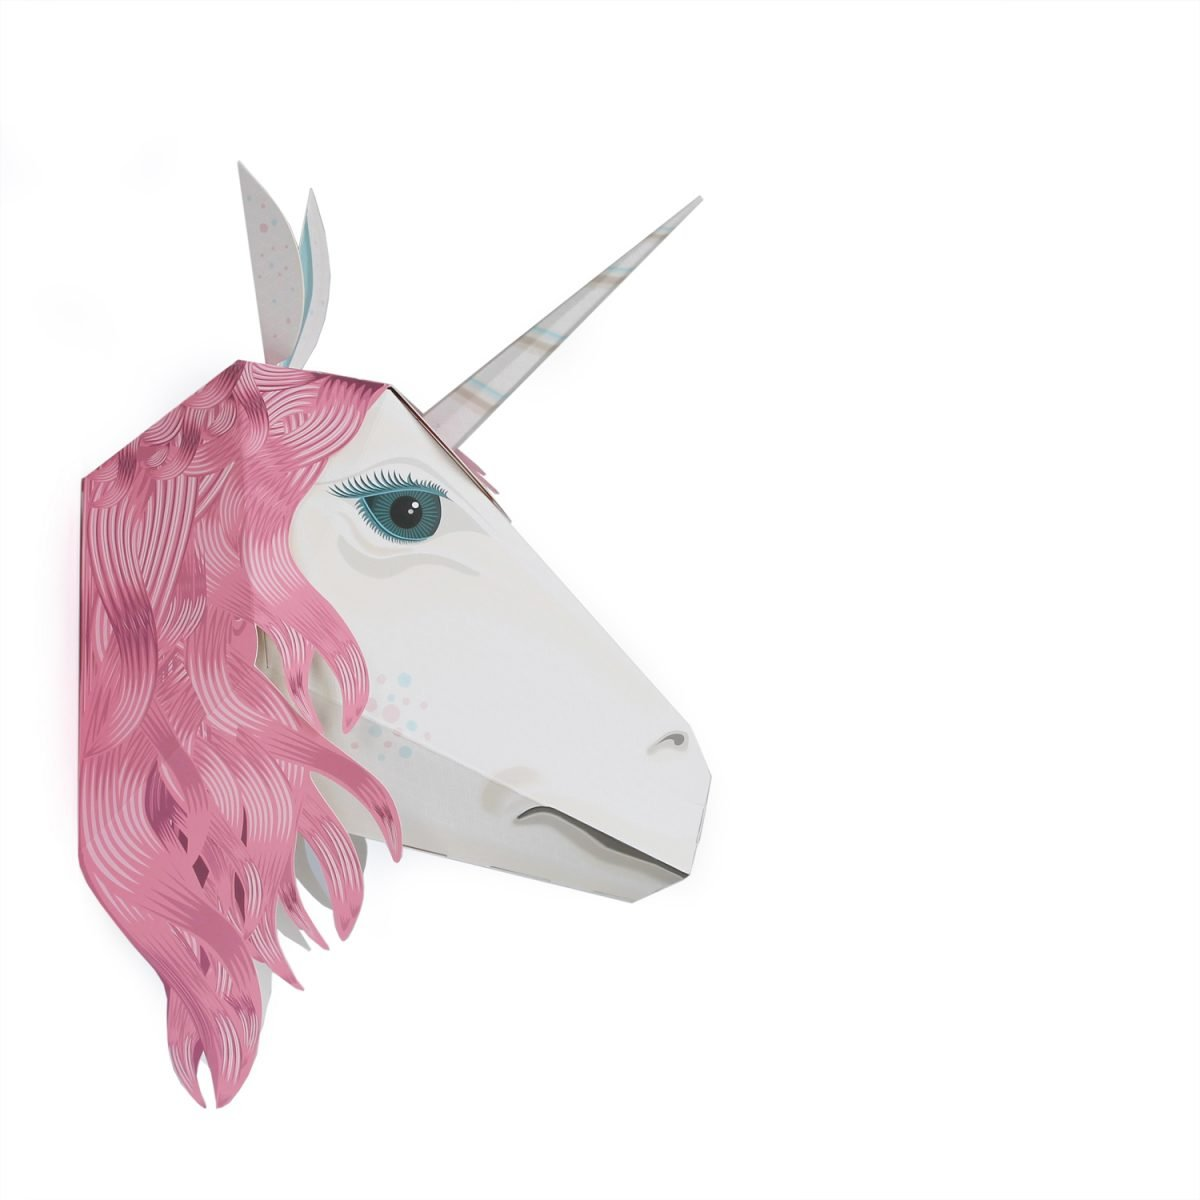 Build your own Unicorn